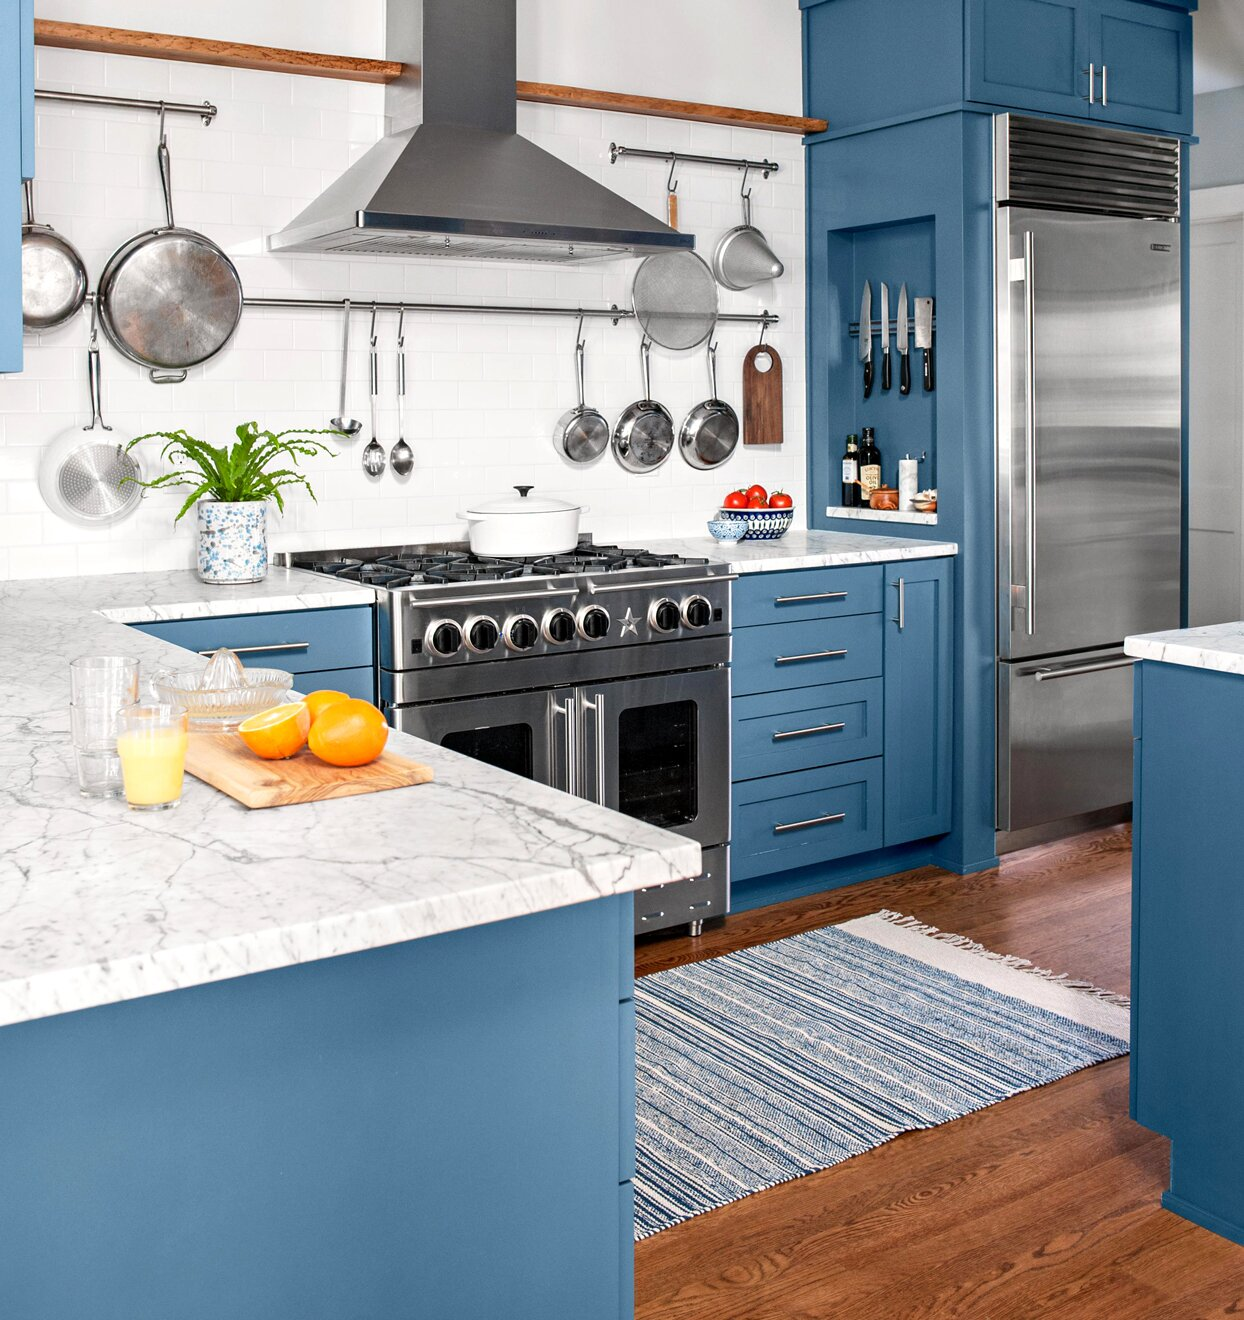 Timeless Kitchen Trends That Are Here to Stay   Better Homes & Gardens